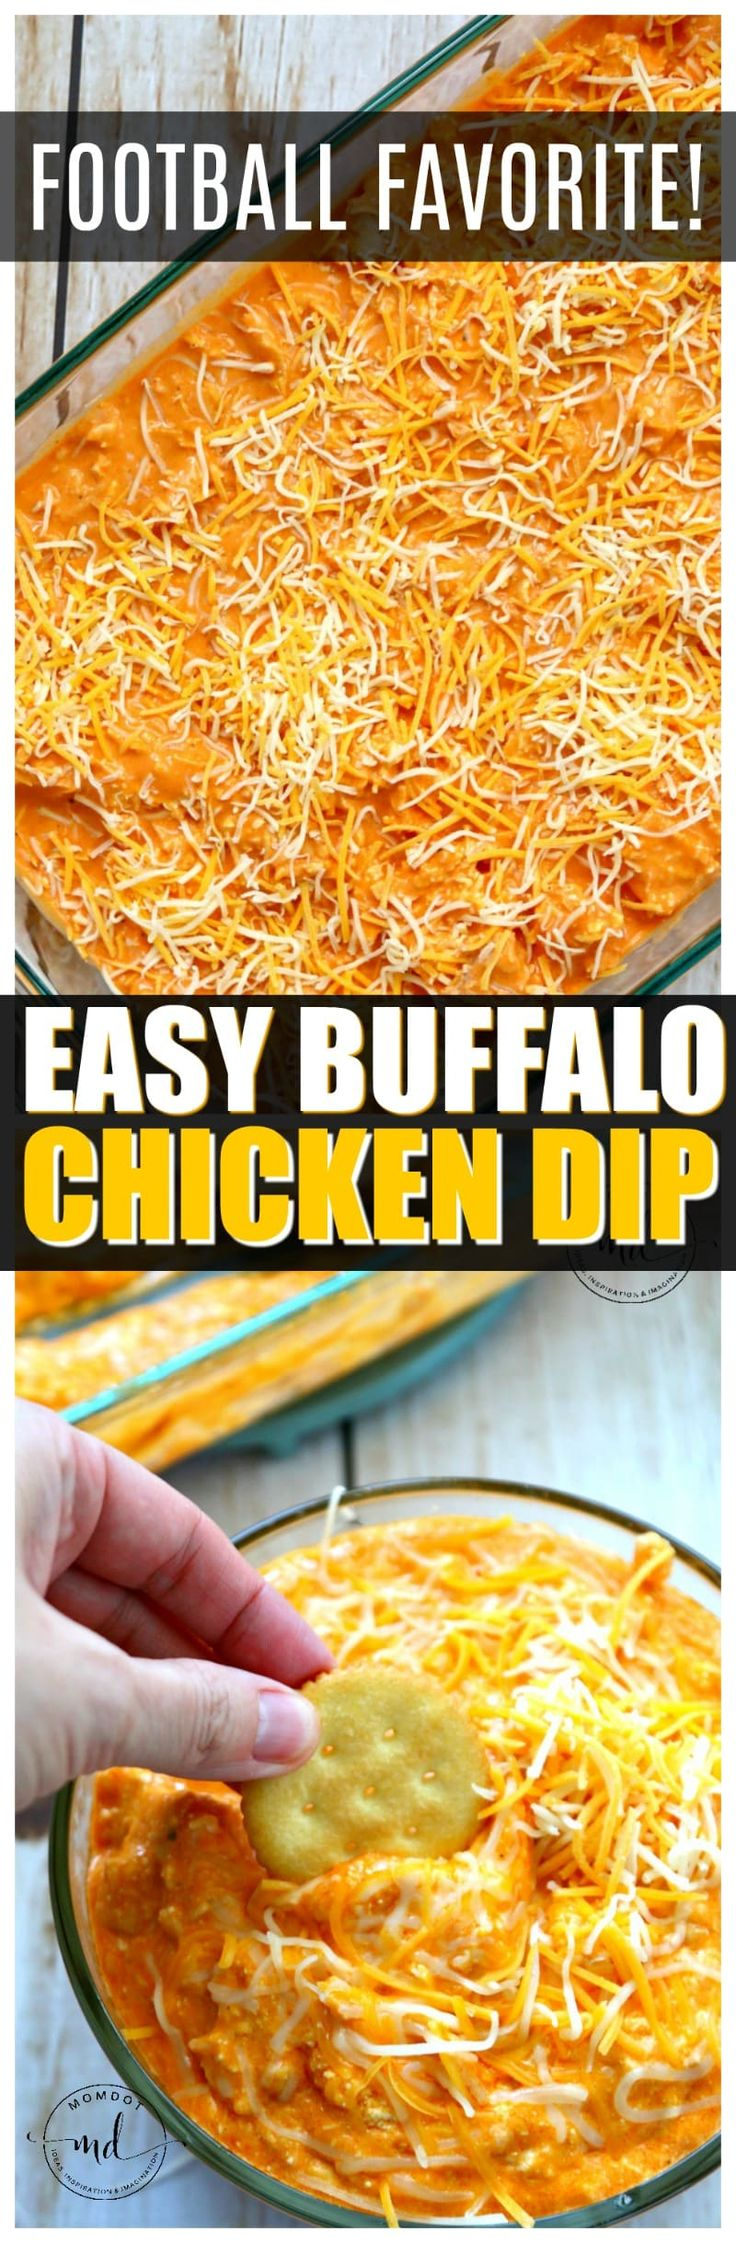 Easy Buffalo Chicken Dip Recipe  | Make buffalo dip under 30 with this awesome recipe tip! Best Dip Recipe EVER!